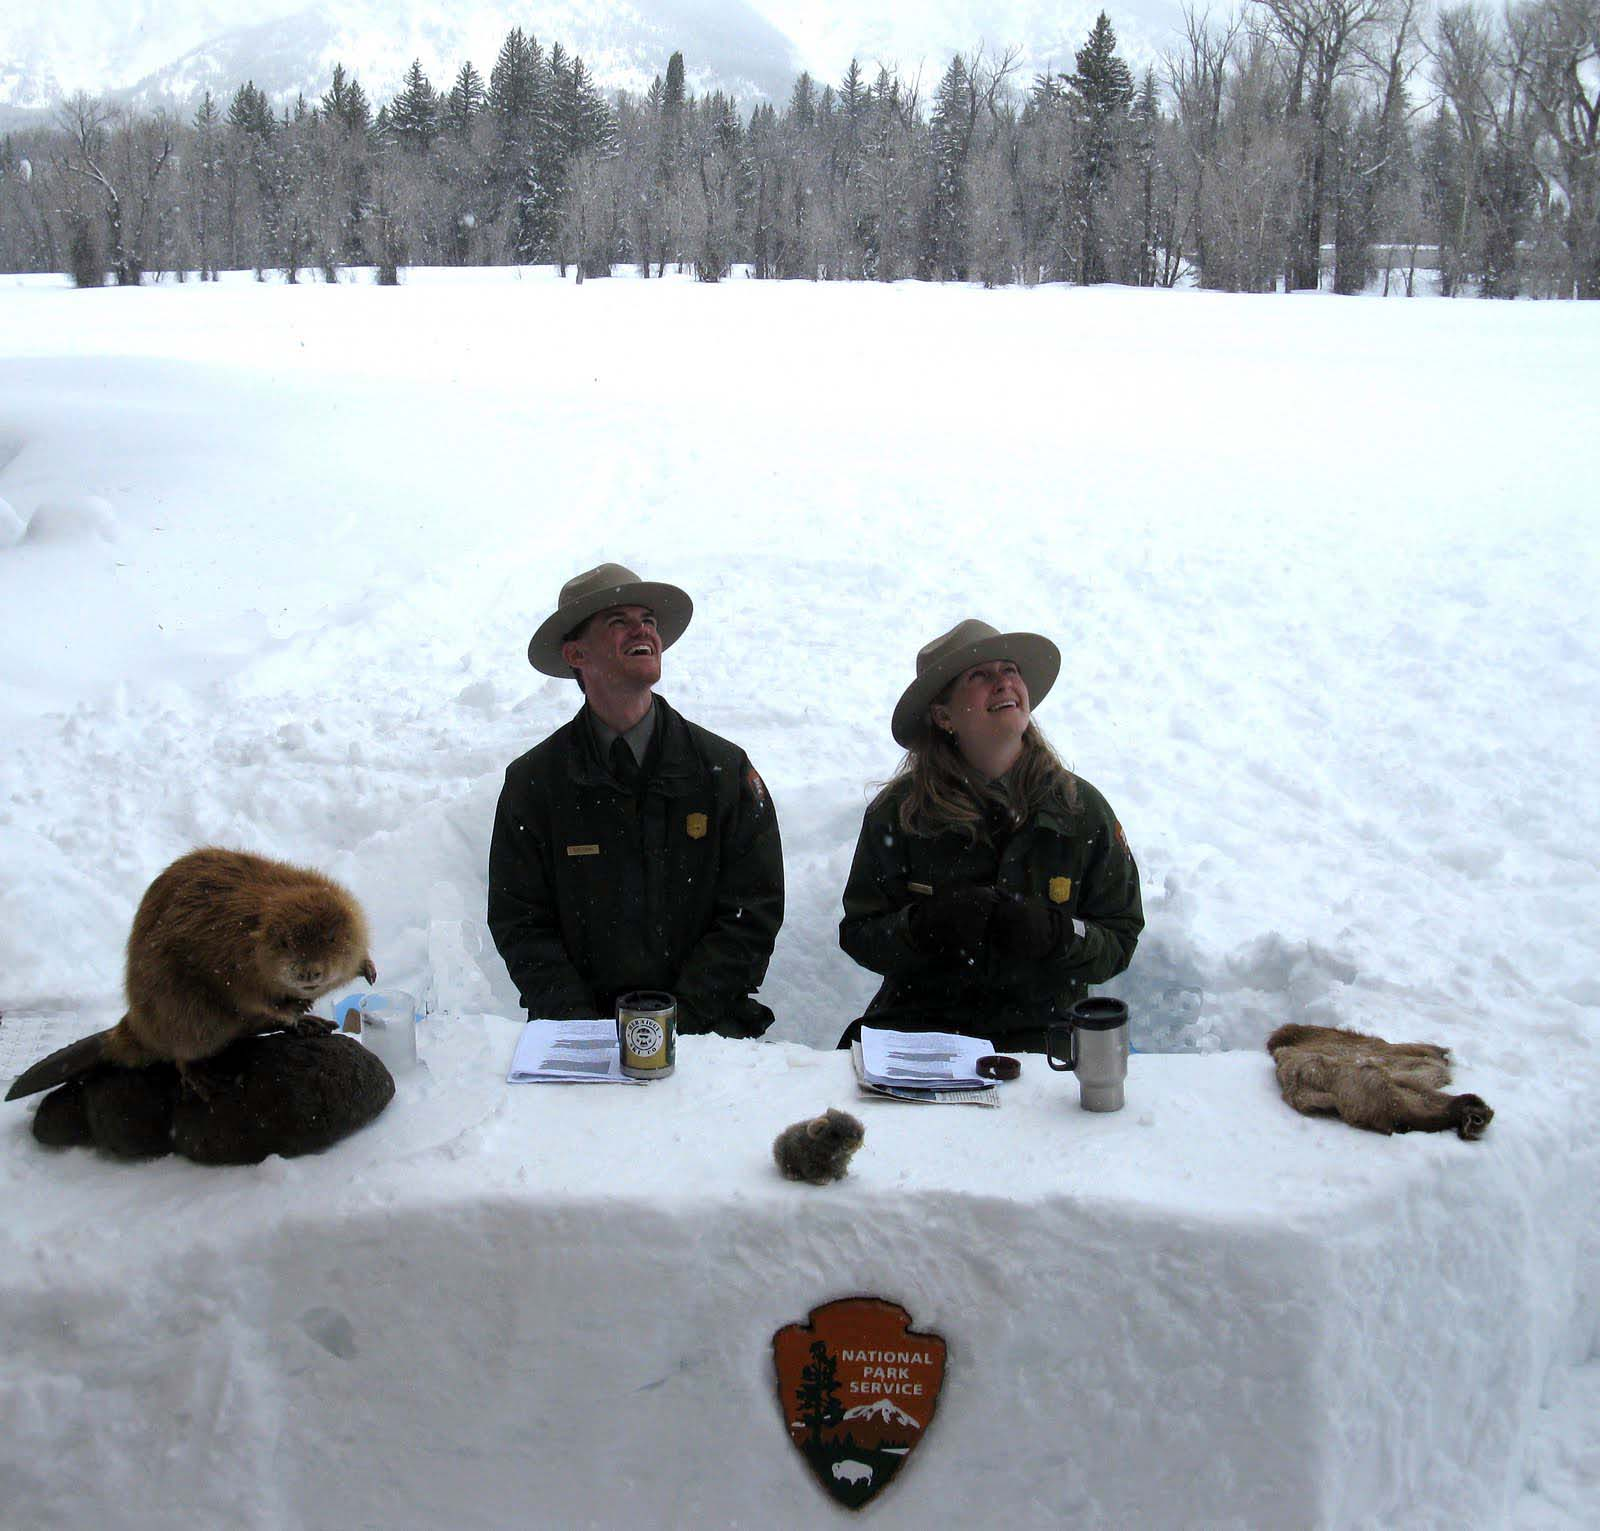 Grand Teton National Park rangers Clay Hanna & Kristen Dragoo broadcast in 2011 from their snowdesk located outside of the Craig Thomas Discovery & Visitor Center in Moose, Wyo. (NPS photo Ñ click to enlarge)